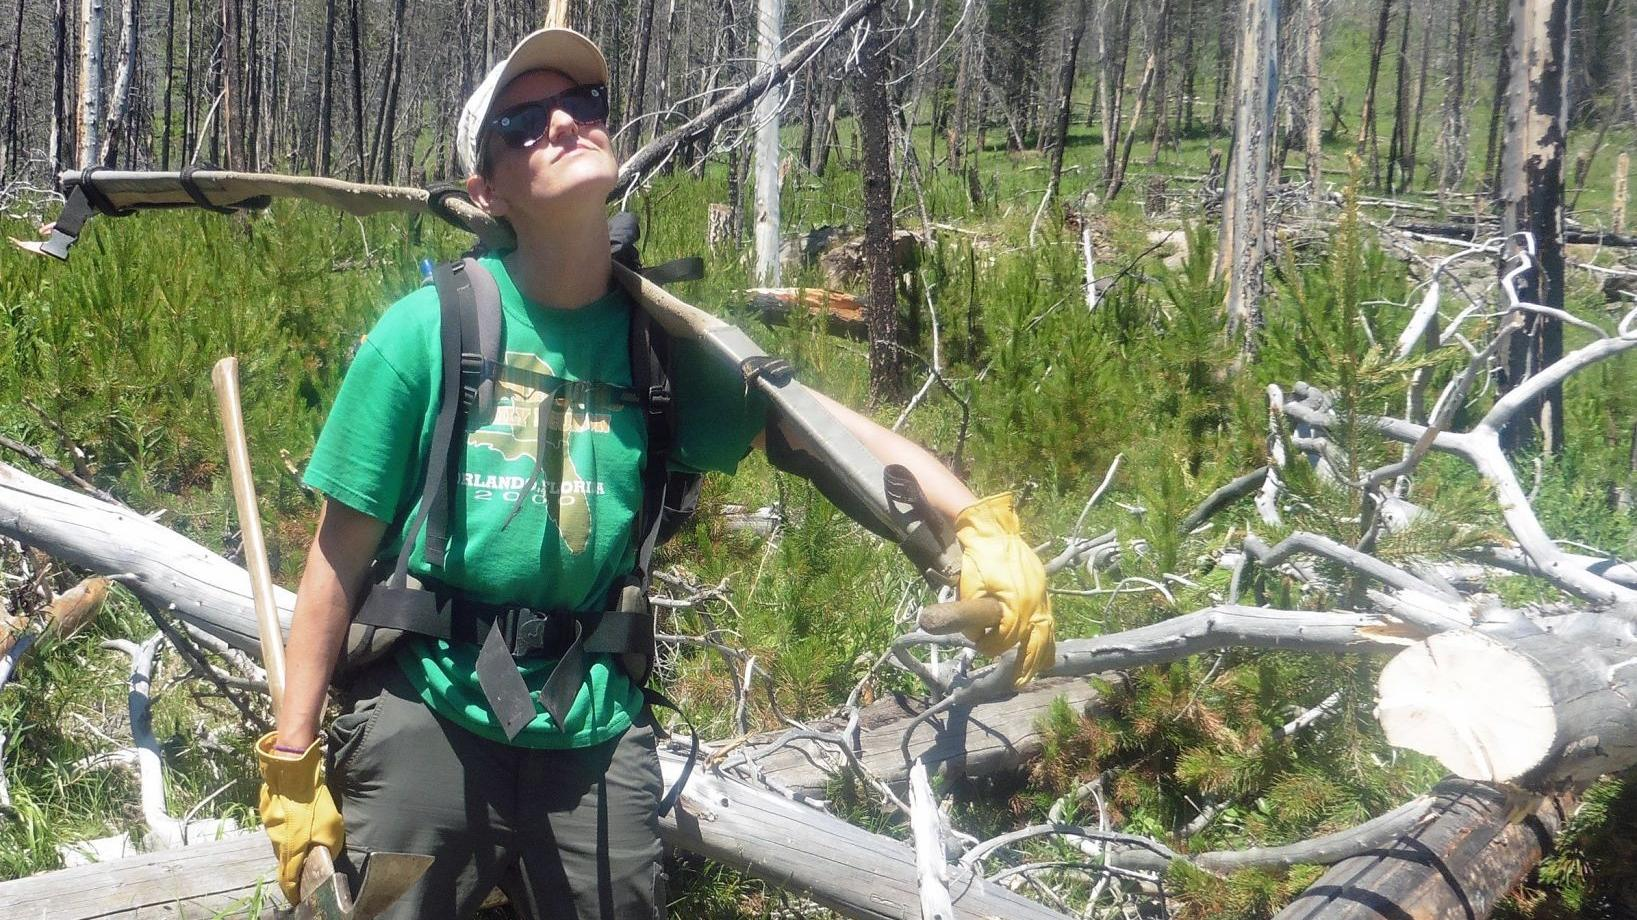 Girl Scouts clear trail as part of wilderness foundation work